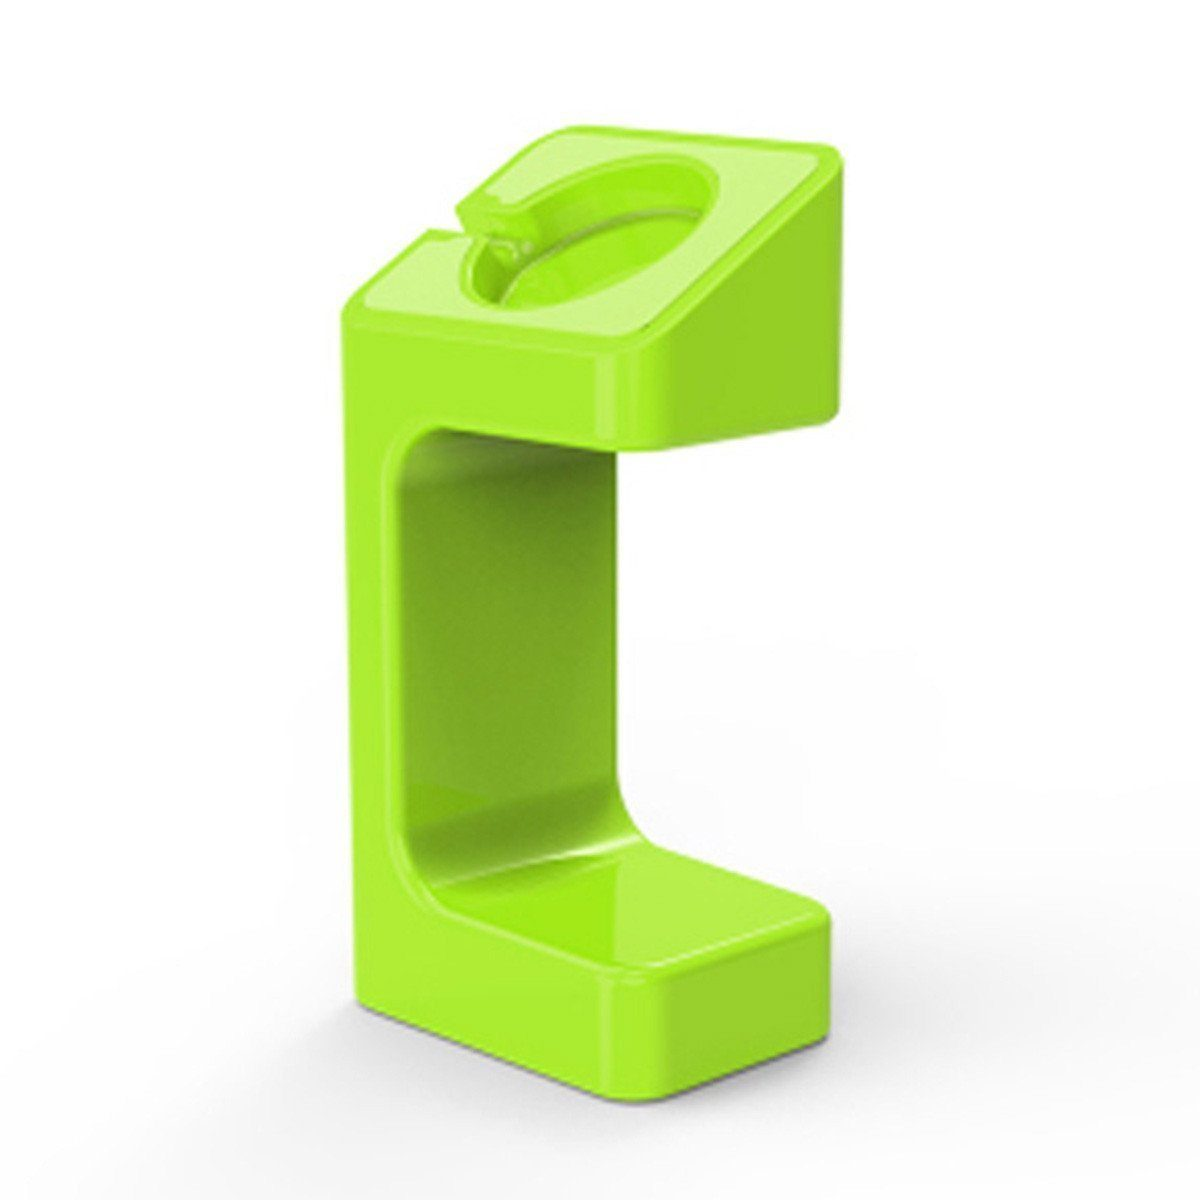 Acrylic Stand for iWatch - Green